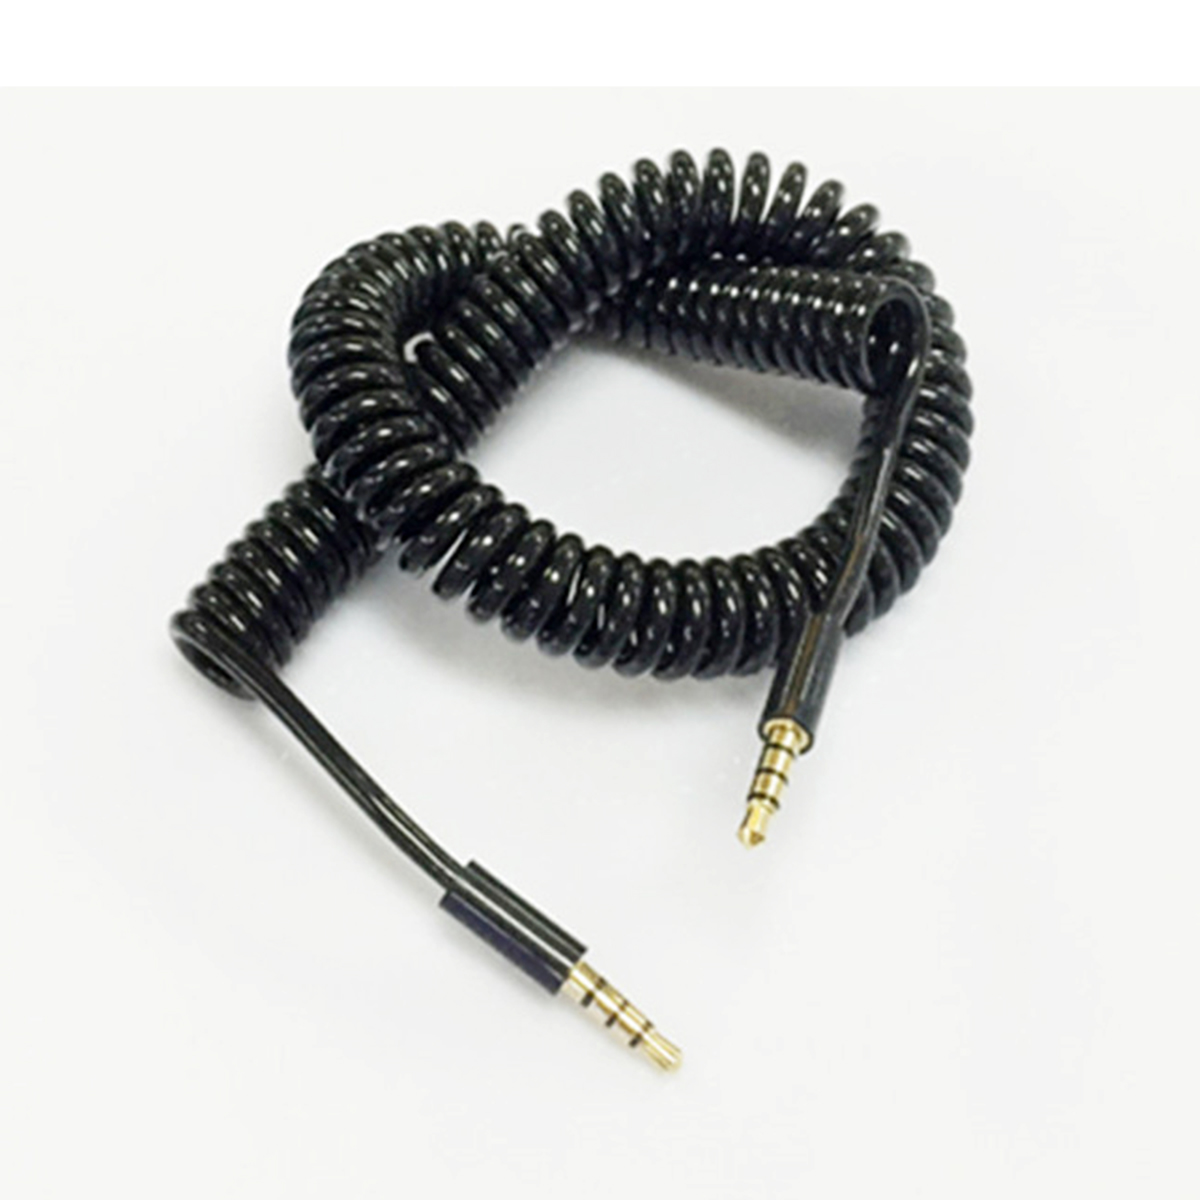 Digital Kabel Initiative Telefon Kabel Audio Kabel 3,5mm Coiled Stereo Aux Auto Audio Kabel Linie Stecker Auf Stecker Gold Überzogene Frühling Teleskop Für Android S